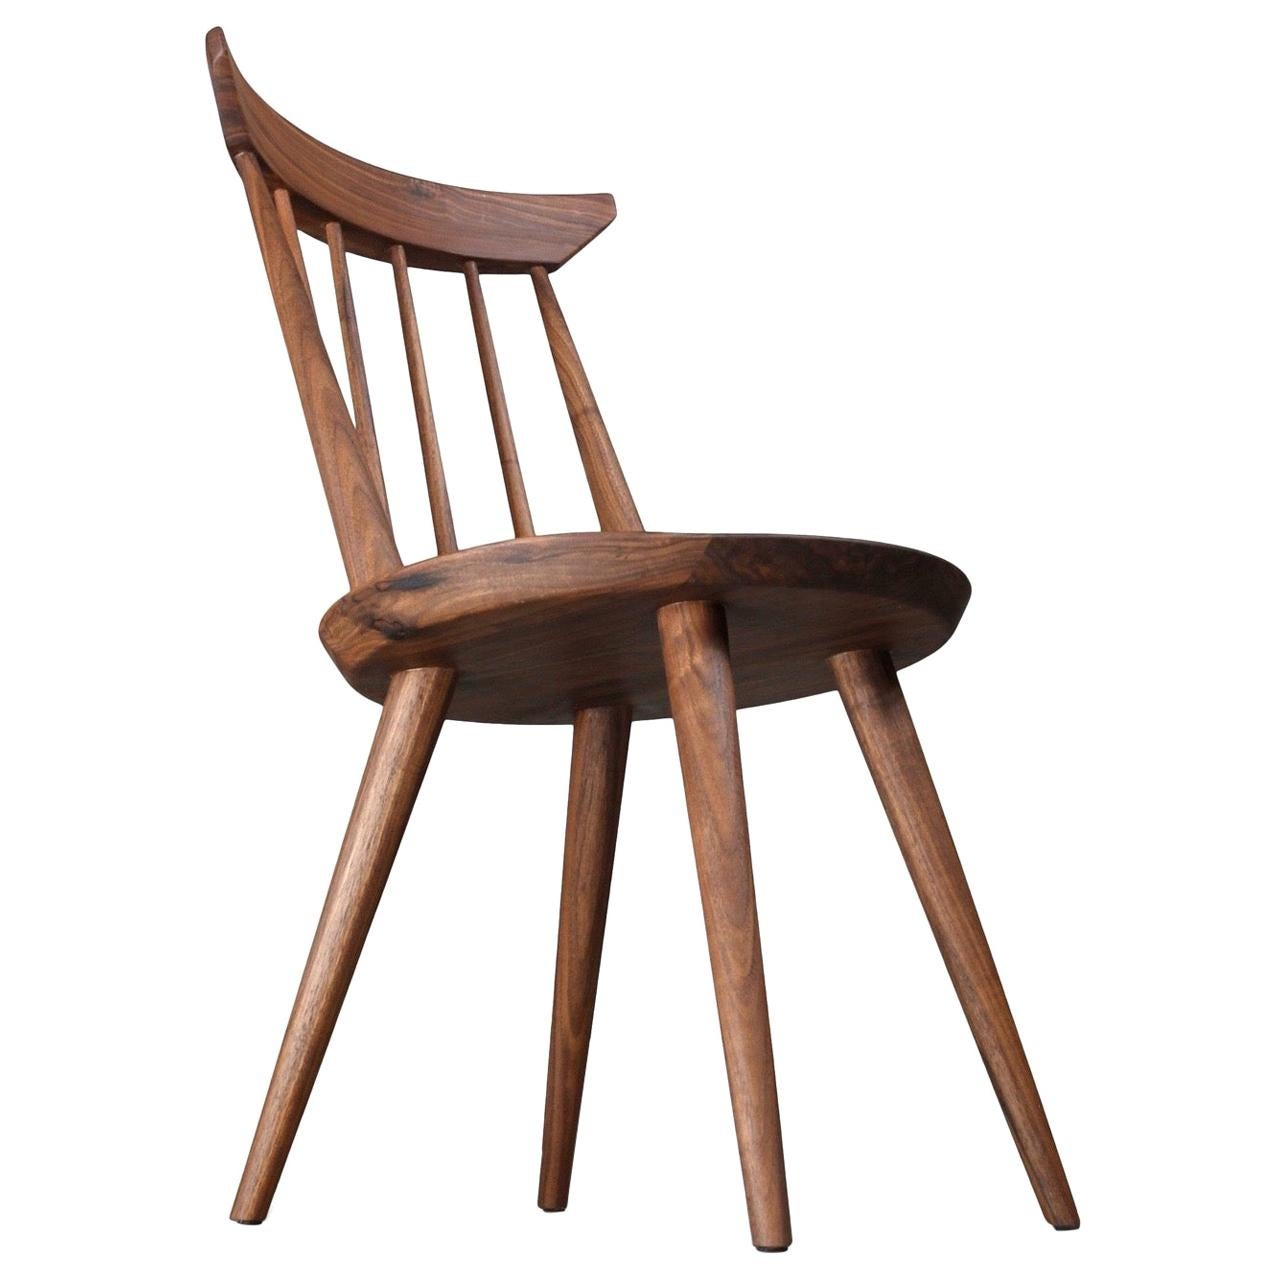 Solid Wood Windsor Style Dining Chair, Spindle Back Chair by Möbius Objects